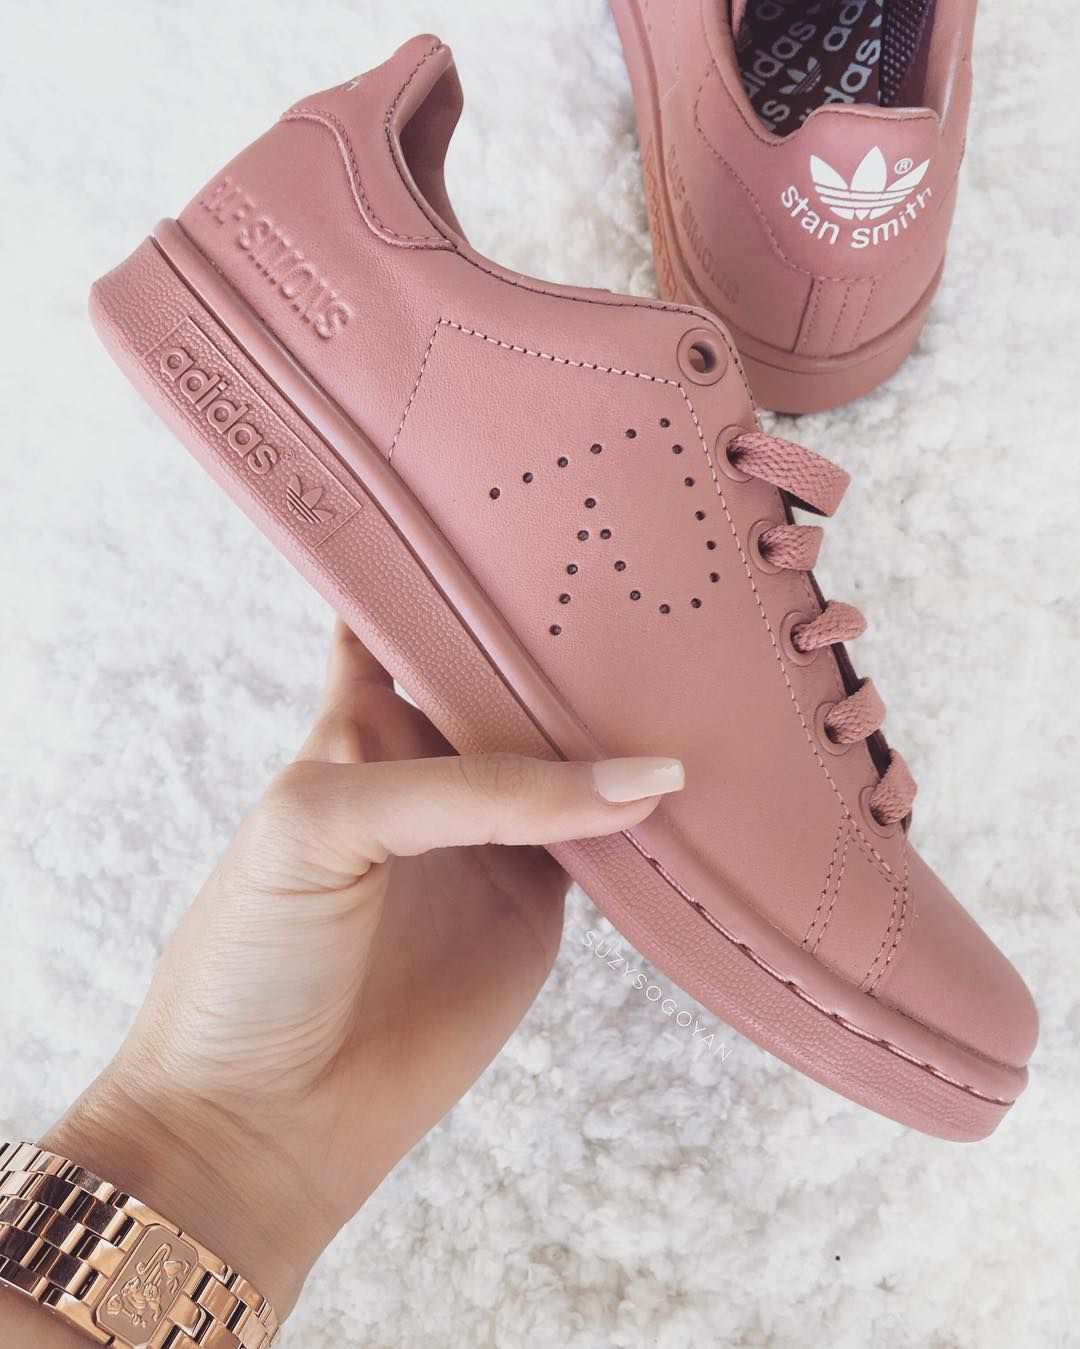 Blush Rose adidas Baskets Baskets and Chaussures Pinterest